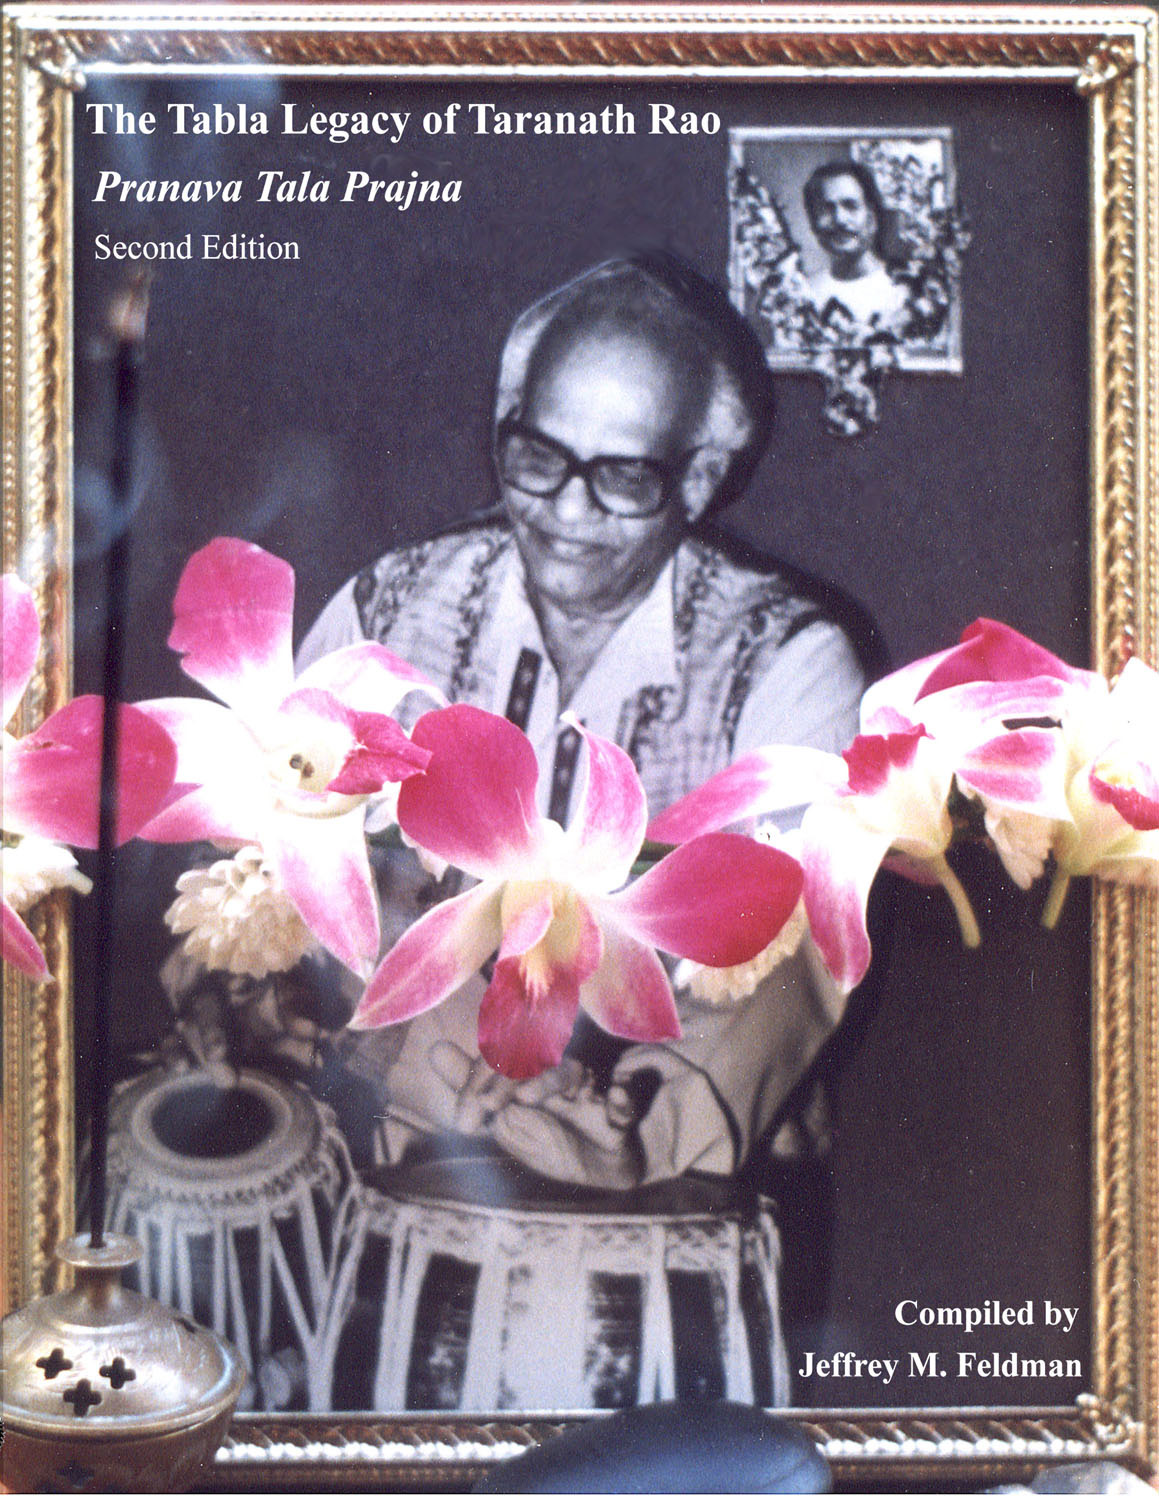 """The Tabla Legacy of Taranath Rao     .     $39.85 + shipping & handling. 81/2""""x11"""", 220 pages, perfect binding. Includes audio DVD with mp3 files and      free access to online videos."""